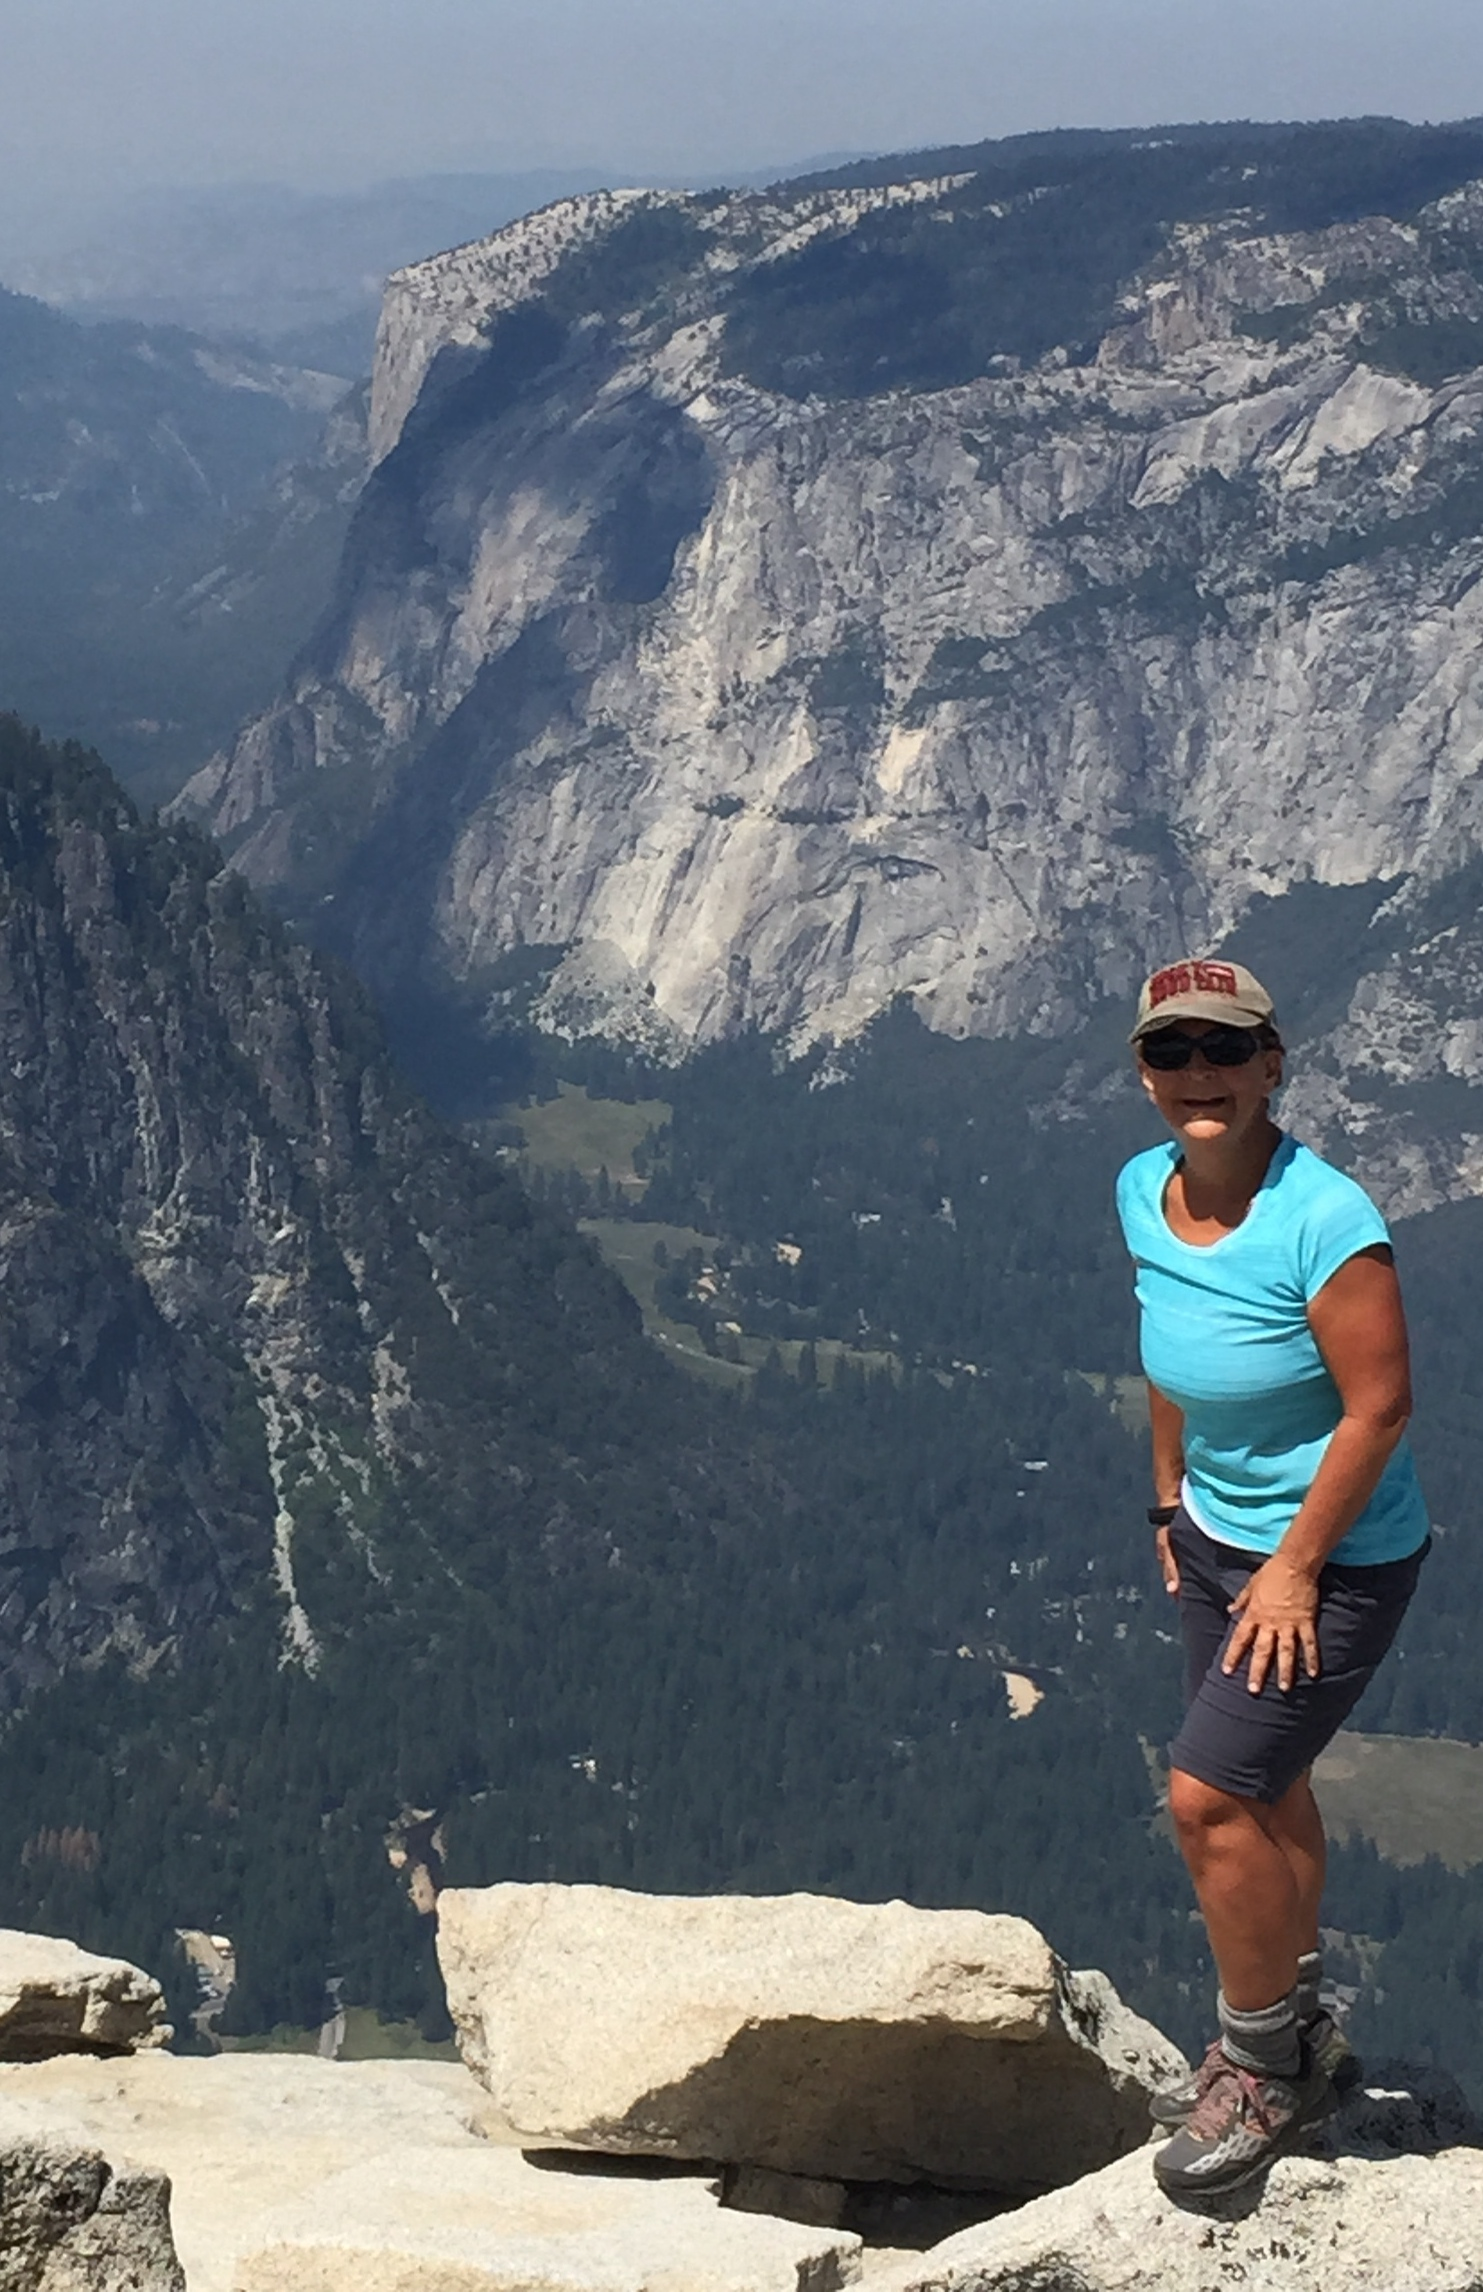 Theresa_on_top_of_Half_dome(1)